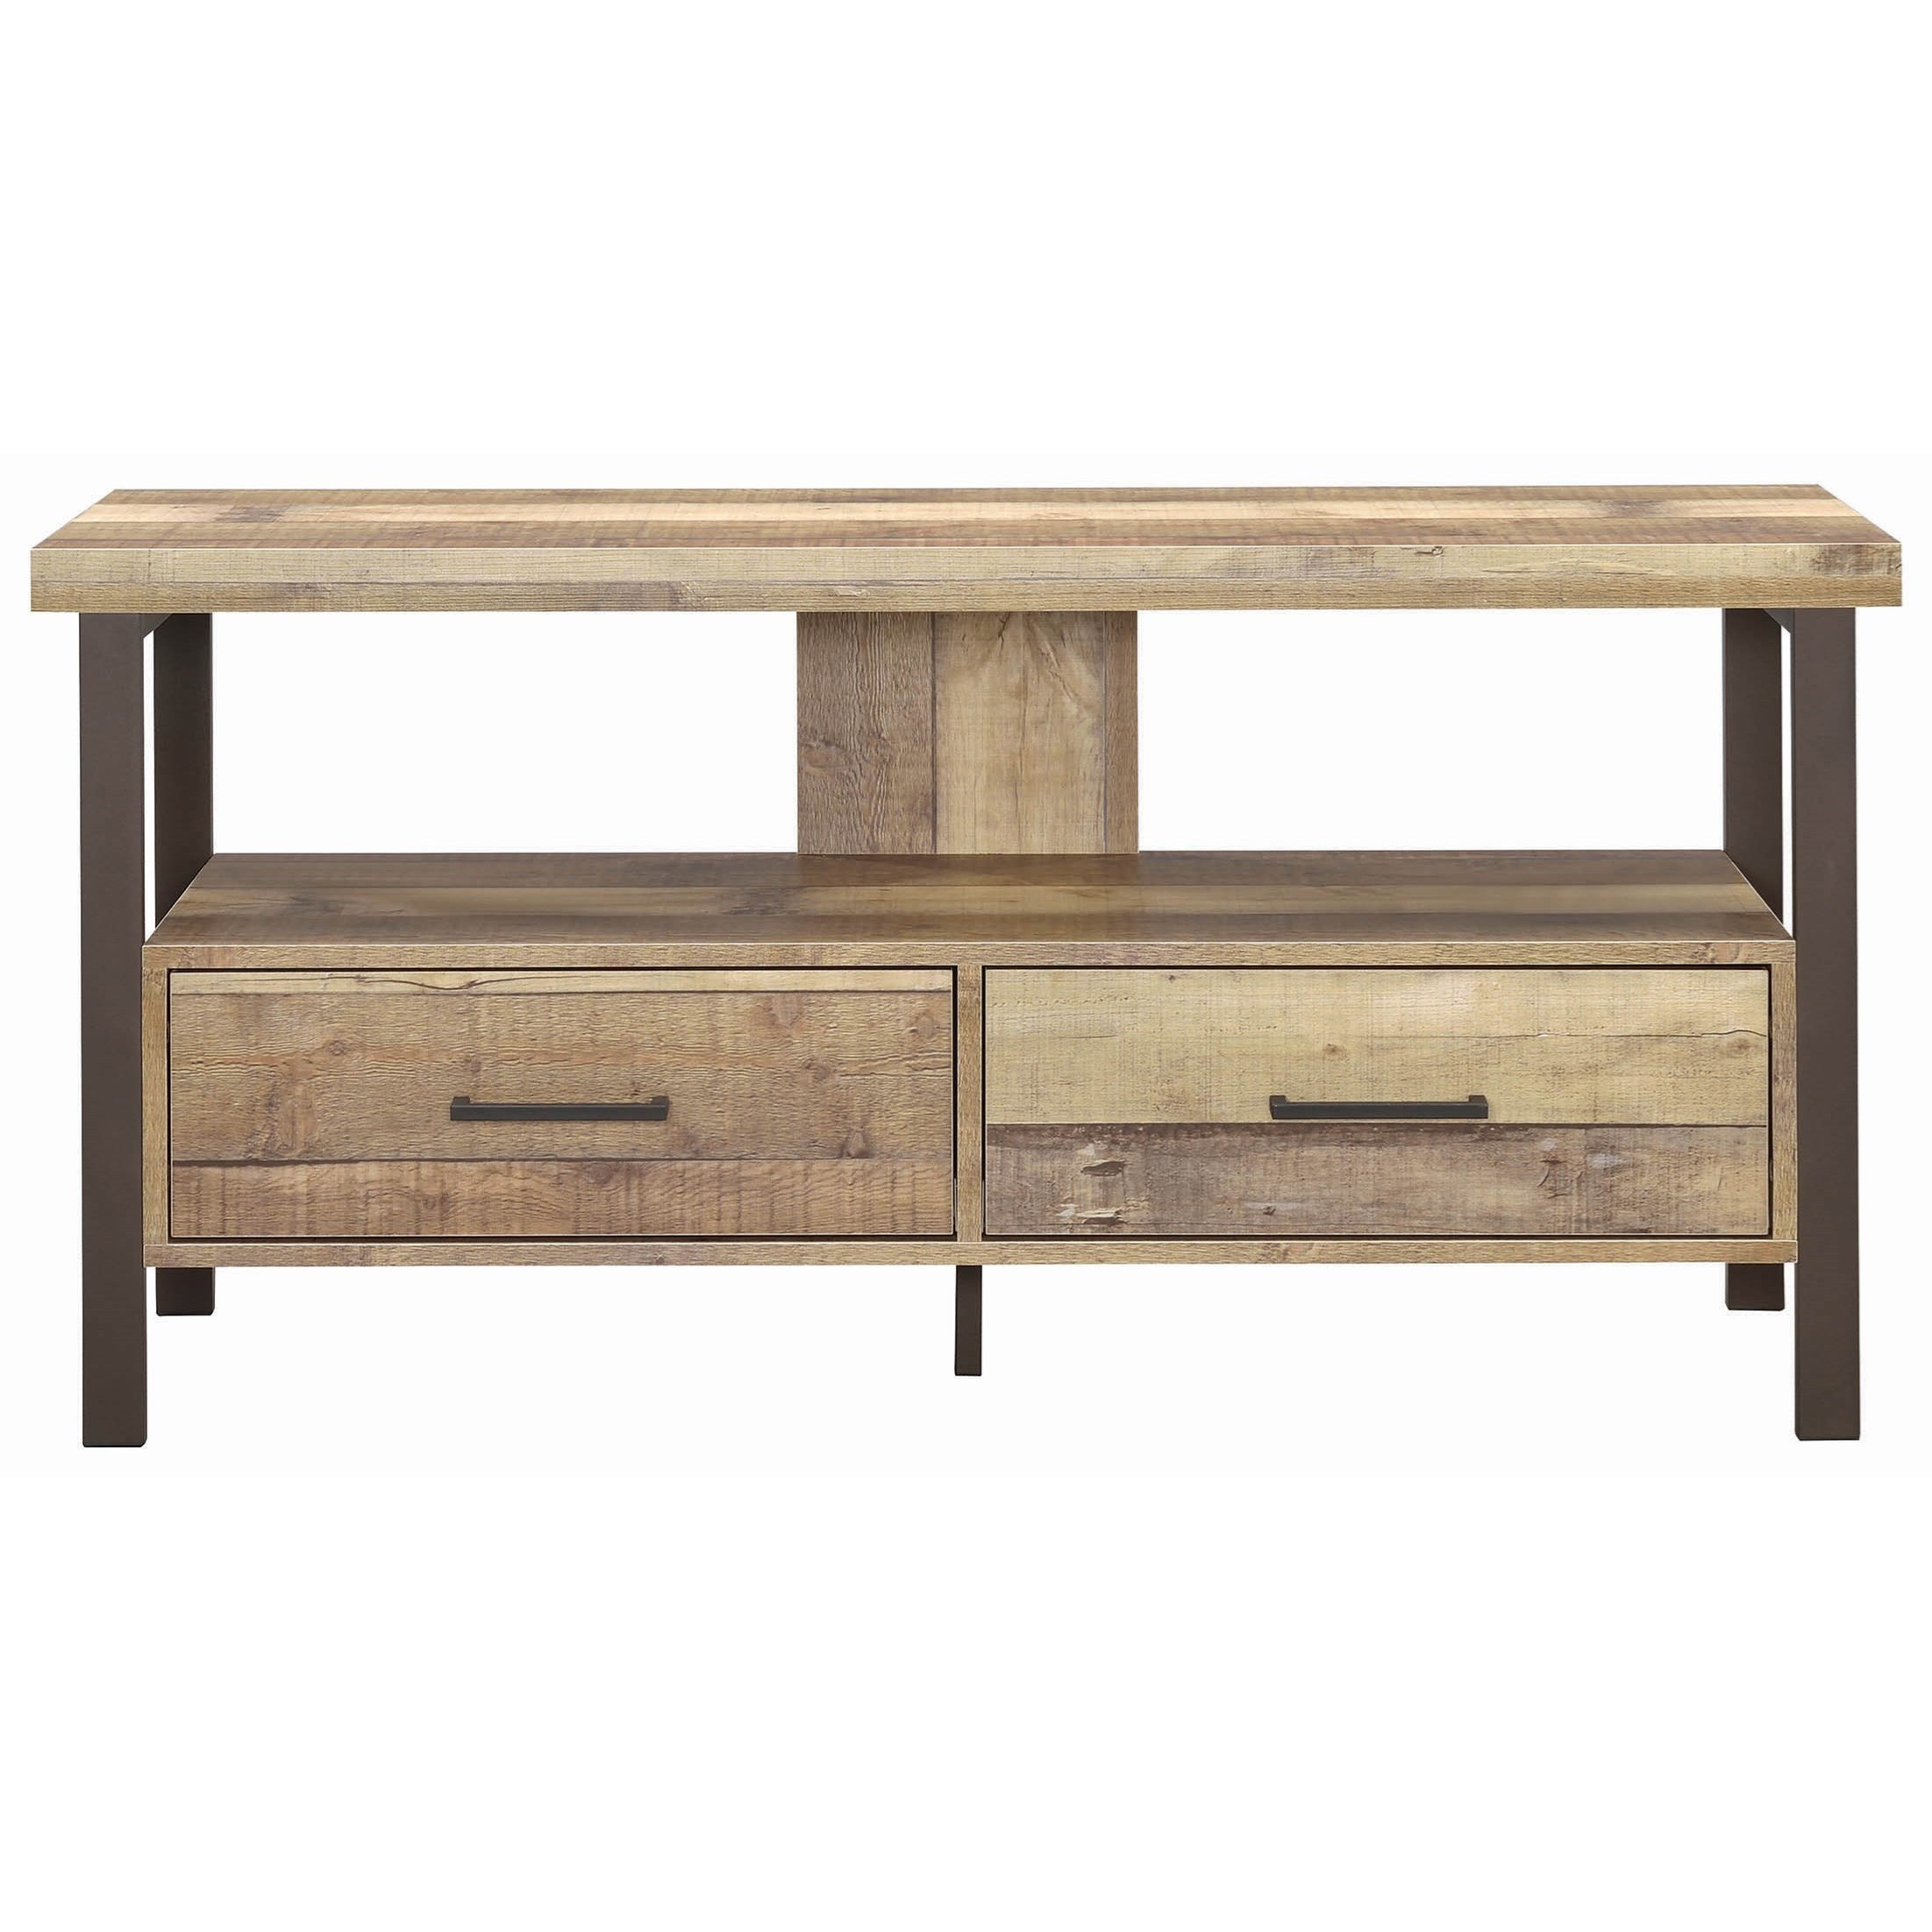 "Levitz Home Furnishings: Coaster TV Stands 721882 Industrial 48"" TV Stand"